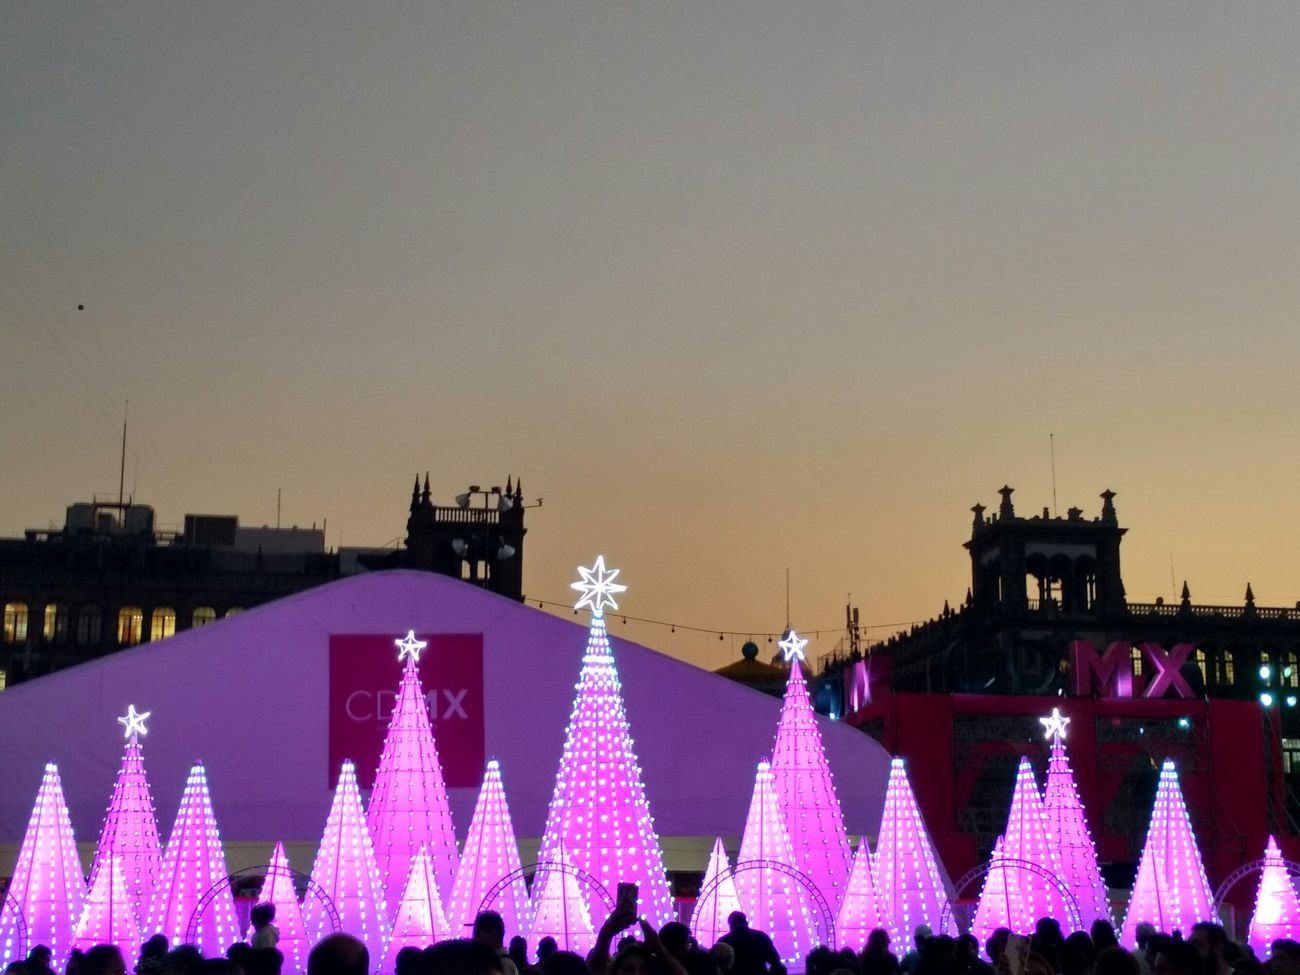 Mexico City Mexico Mexico DF Mexicocity  Mexico, D.F. Mexico Travel Navidad Iluminación Cdmx Cdmx2016 Christmas Tree Celebration New Year's Eve Night Outdoors Sky No People Annual Event Mexico City. Mexico City